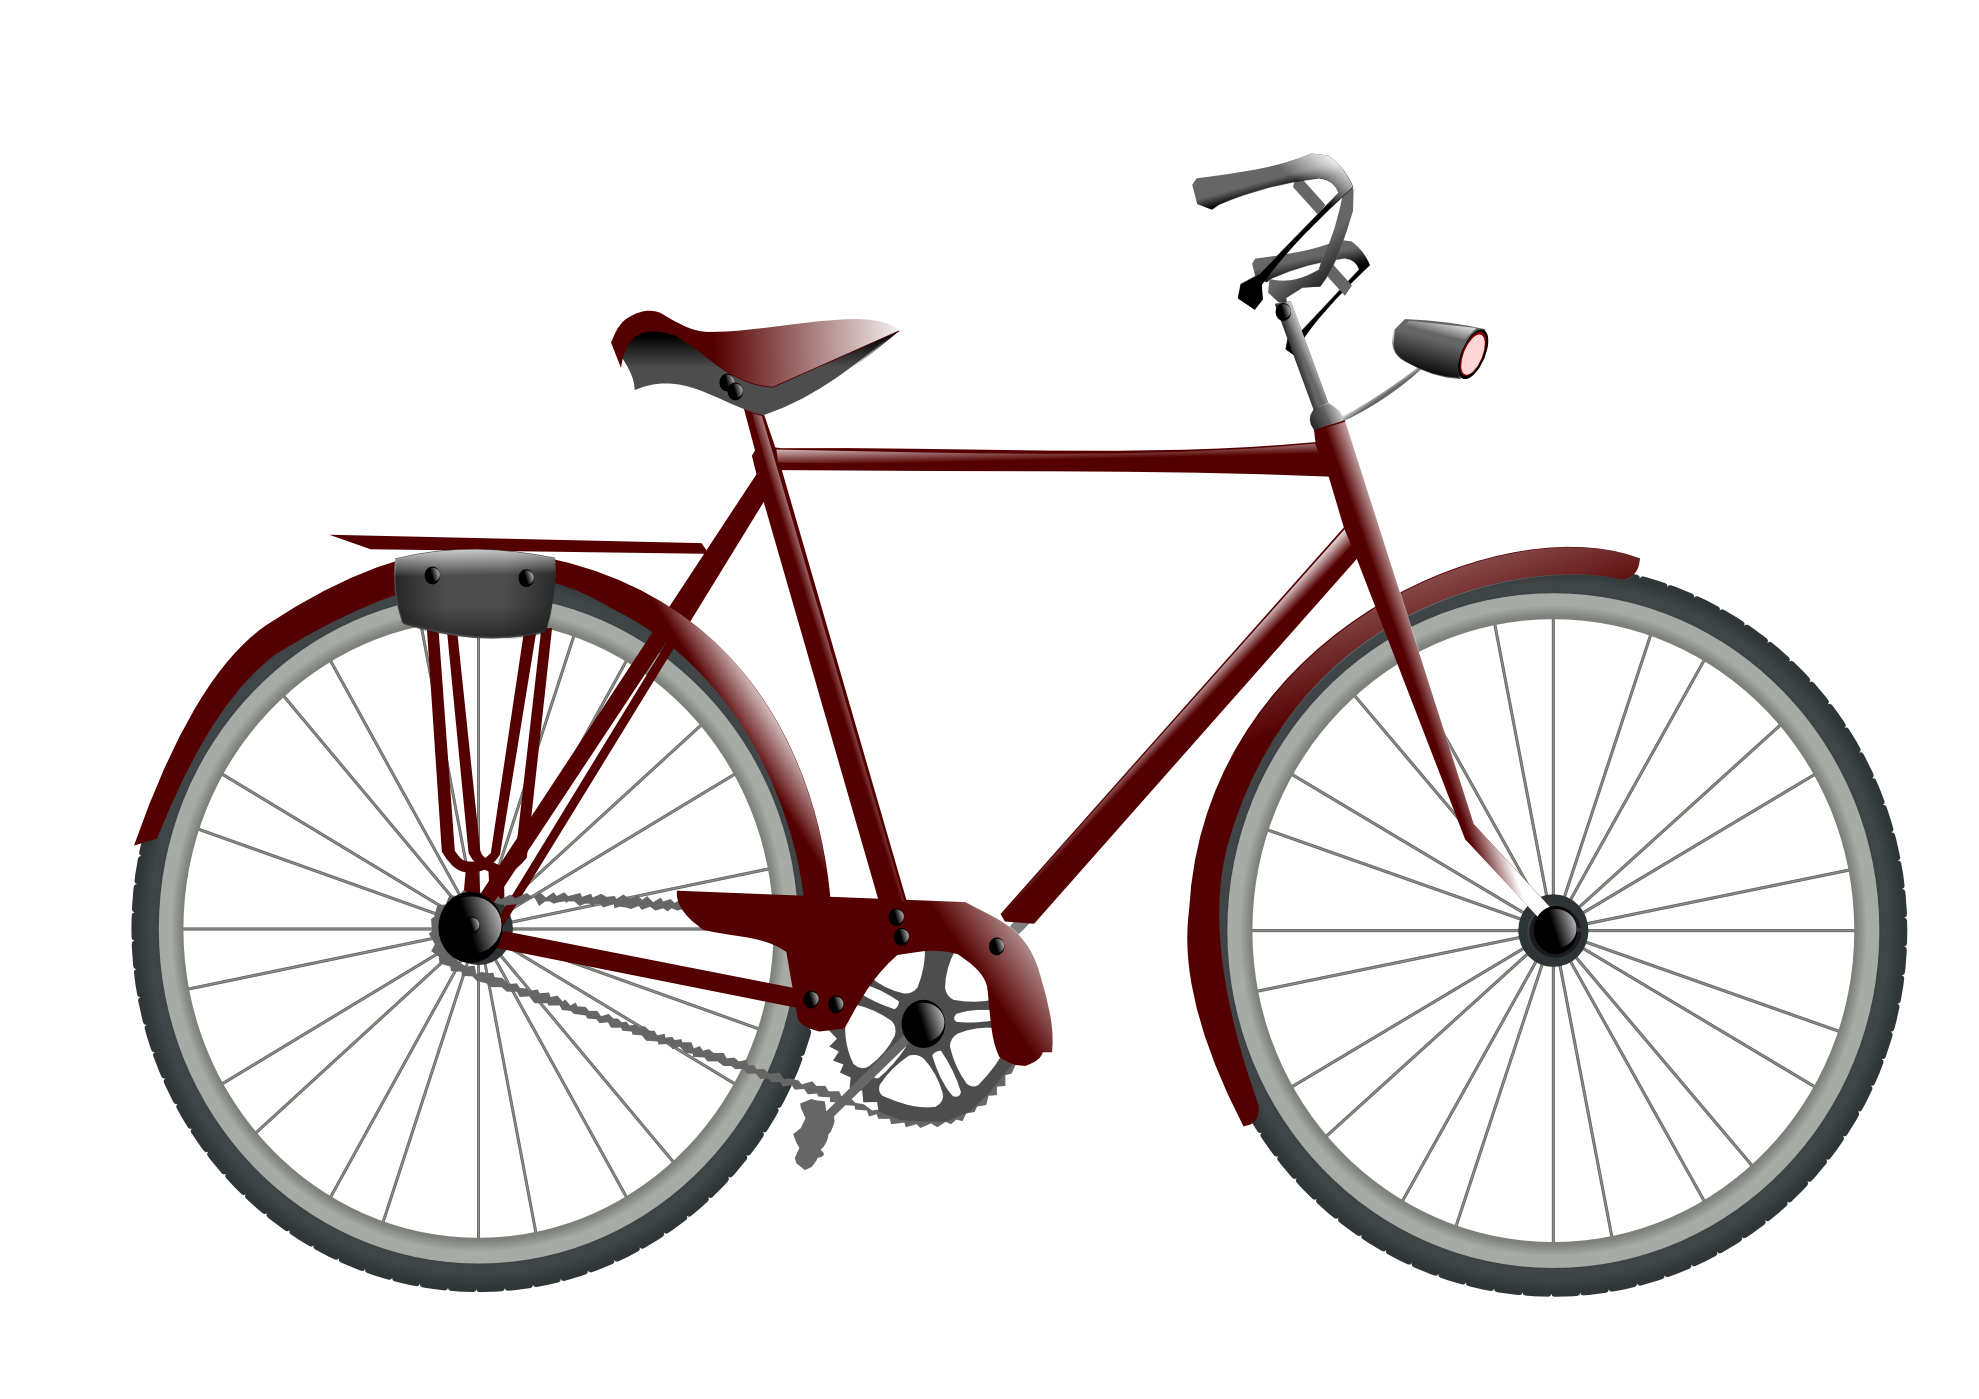 1979x1399 Bicycle Images (24)